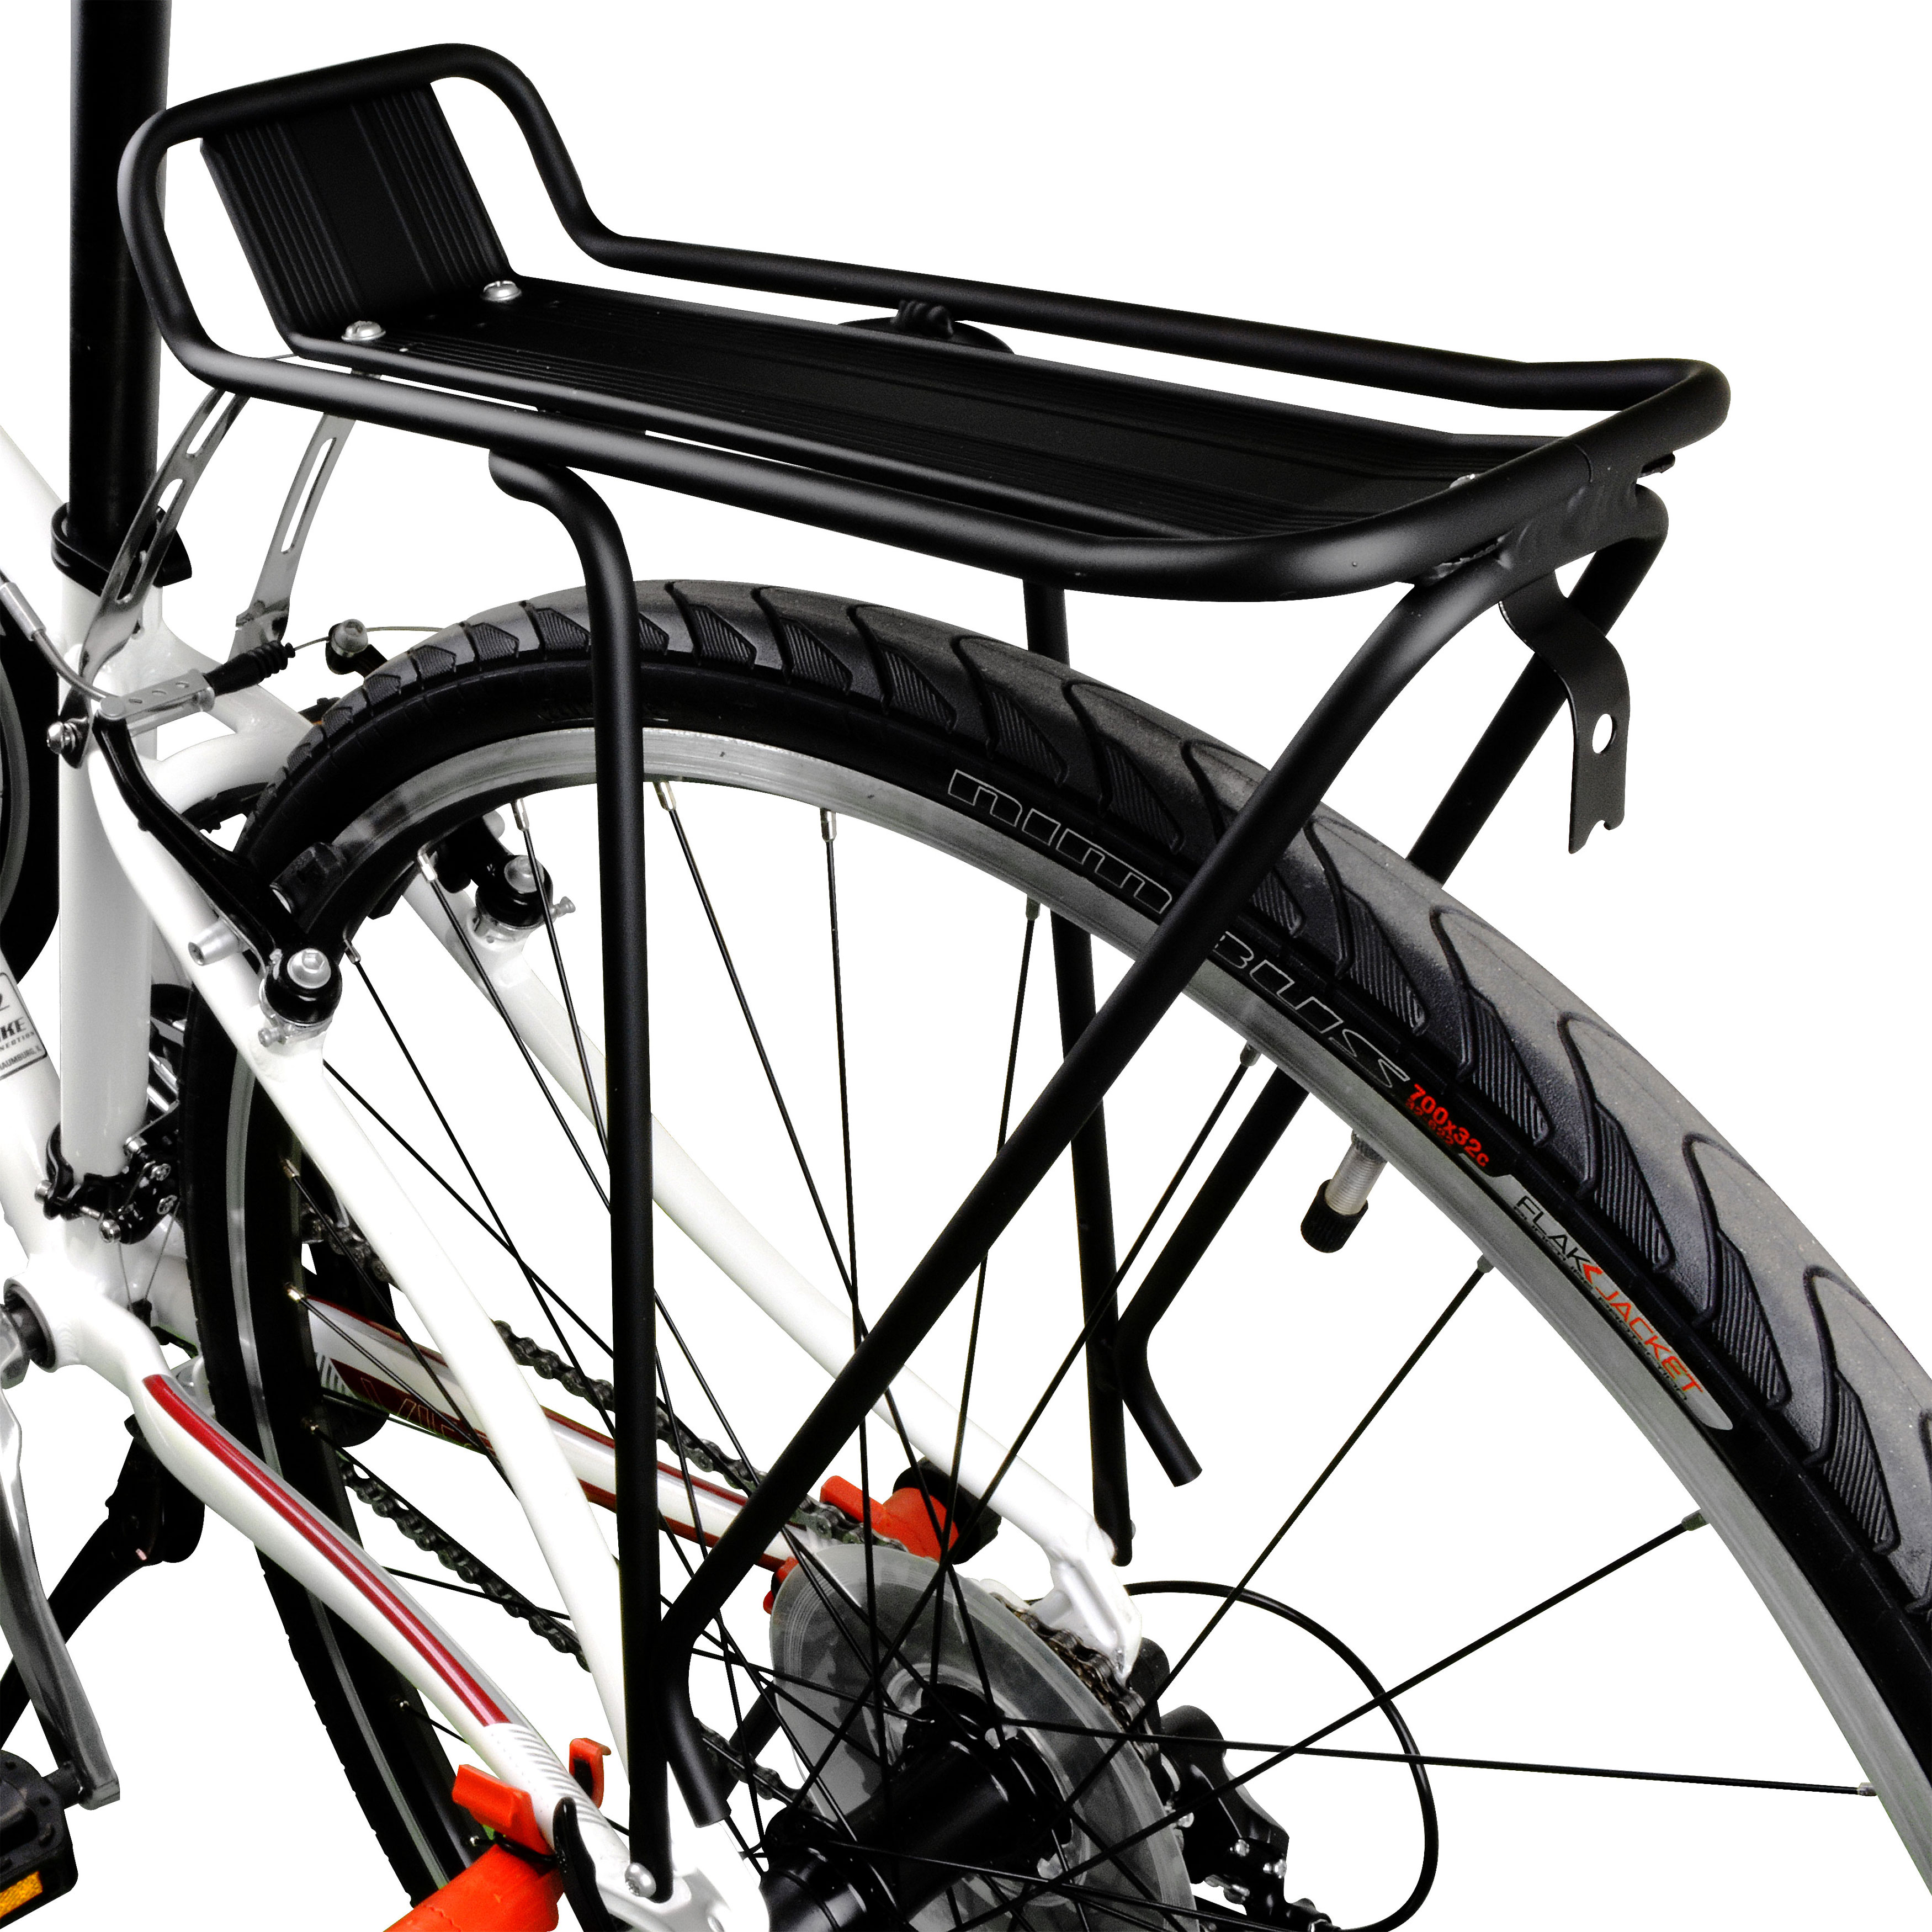 """BV Bicycle Commuter Rear Carrier Rack For 26"""" and 28"""" Bicycles Frames, Carries Up To 55 lbs, Frame Mounted , Fender Board"""